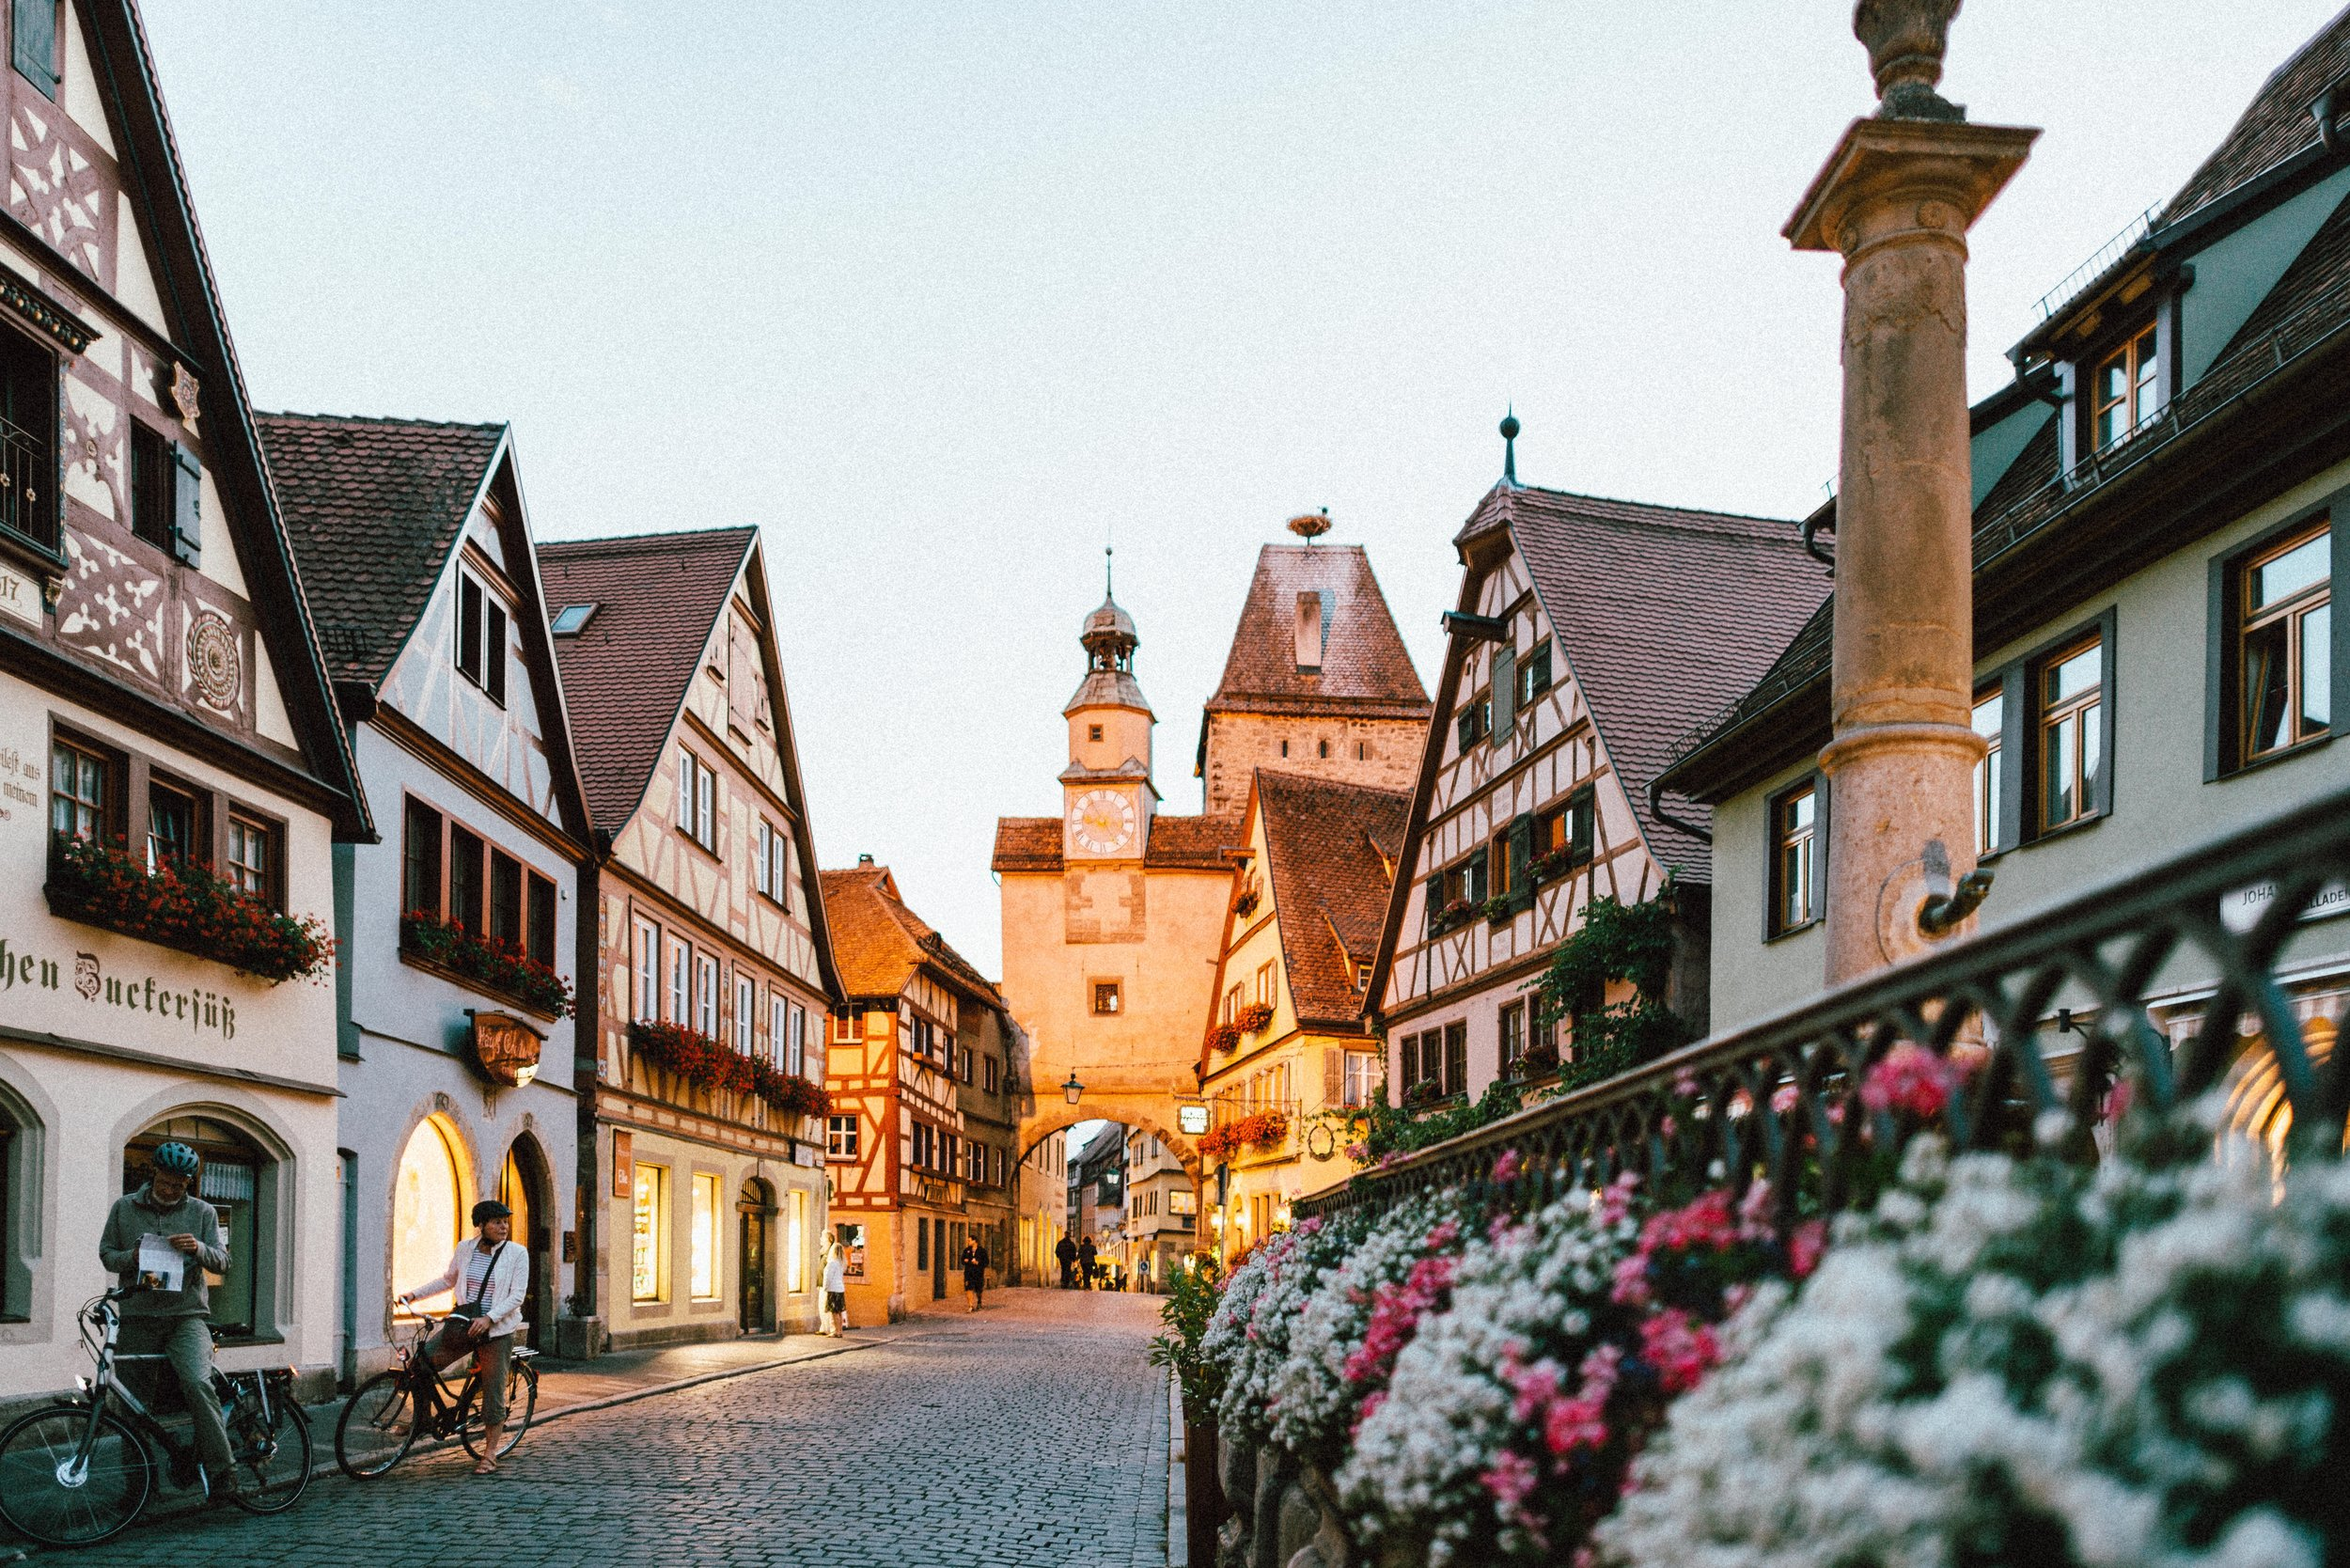 Traveling to Germany for alternative cancer treatment